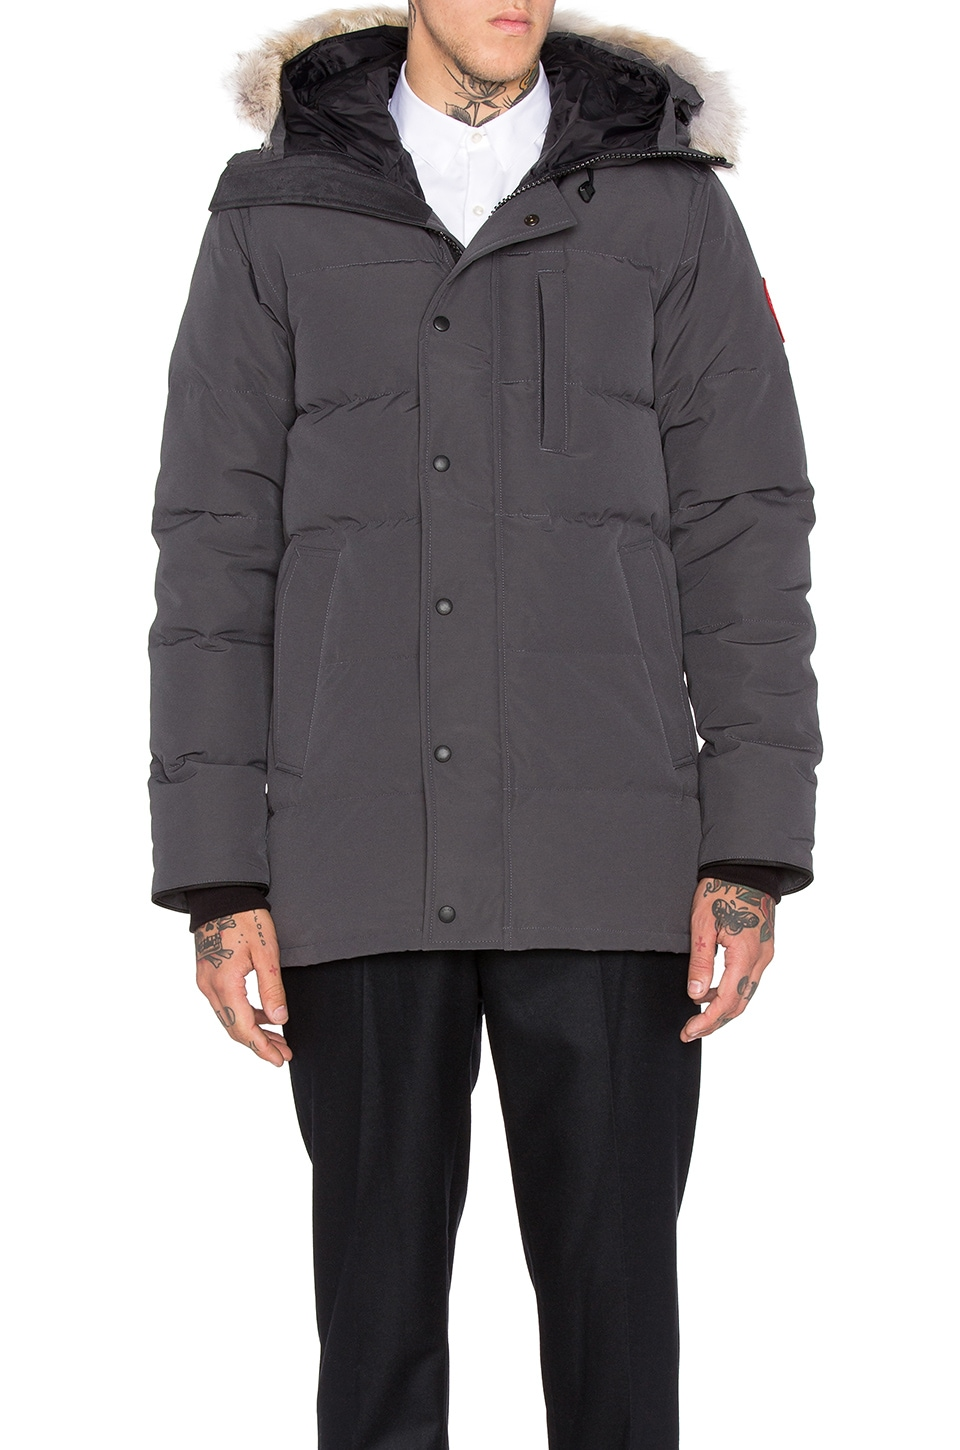 Photo of Carson Coyote Fur Trim Parka by Canada Goose men clothes